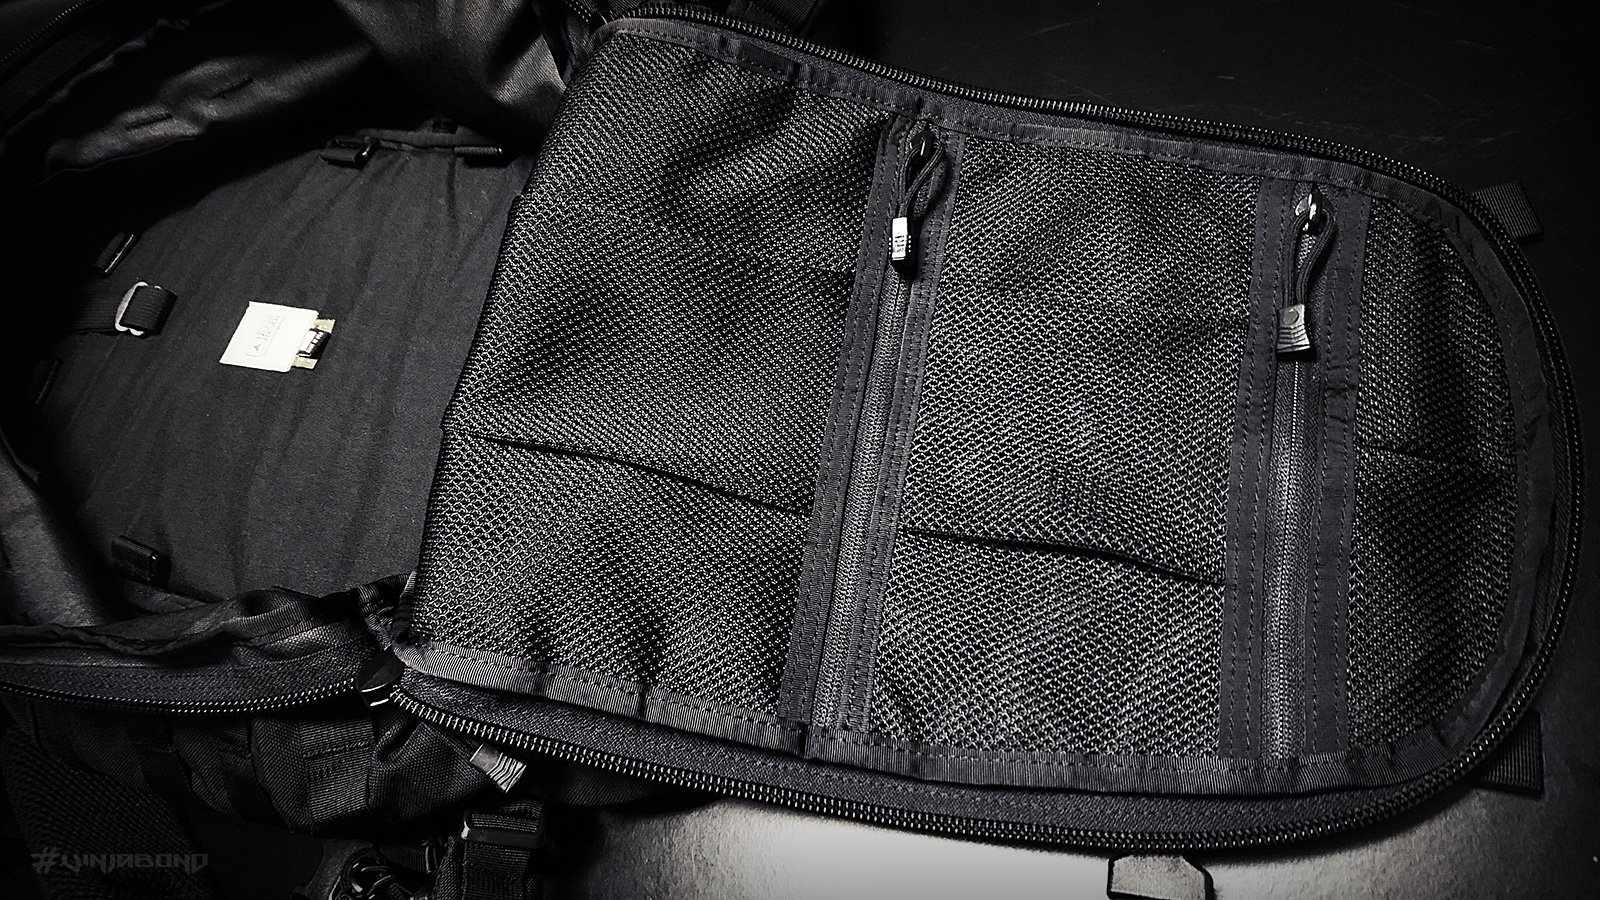 - Dual Internal Mesh Pockets -